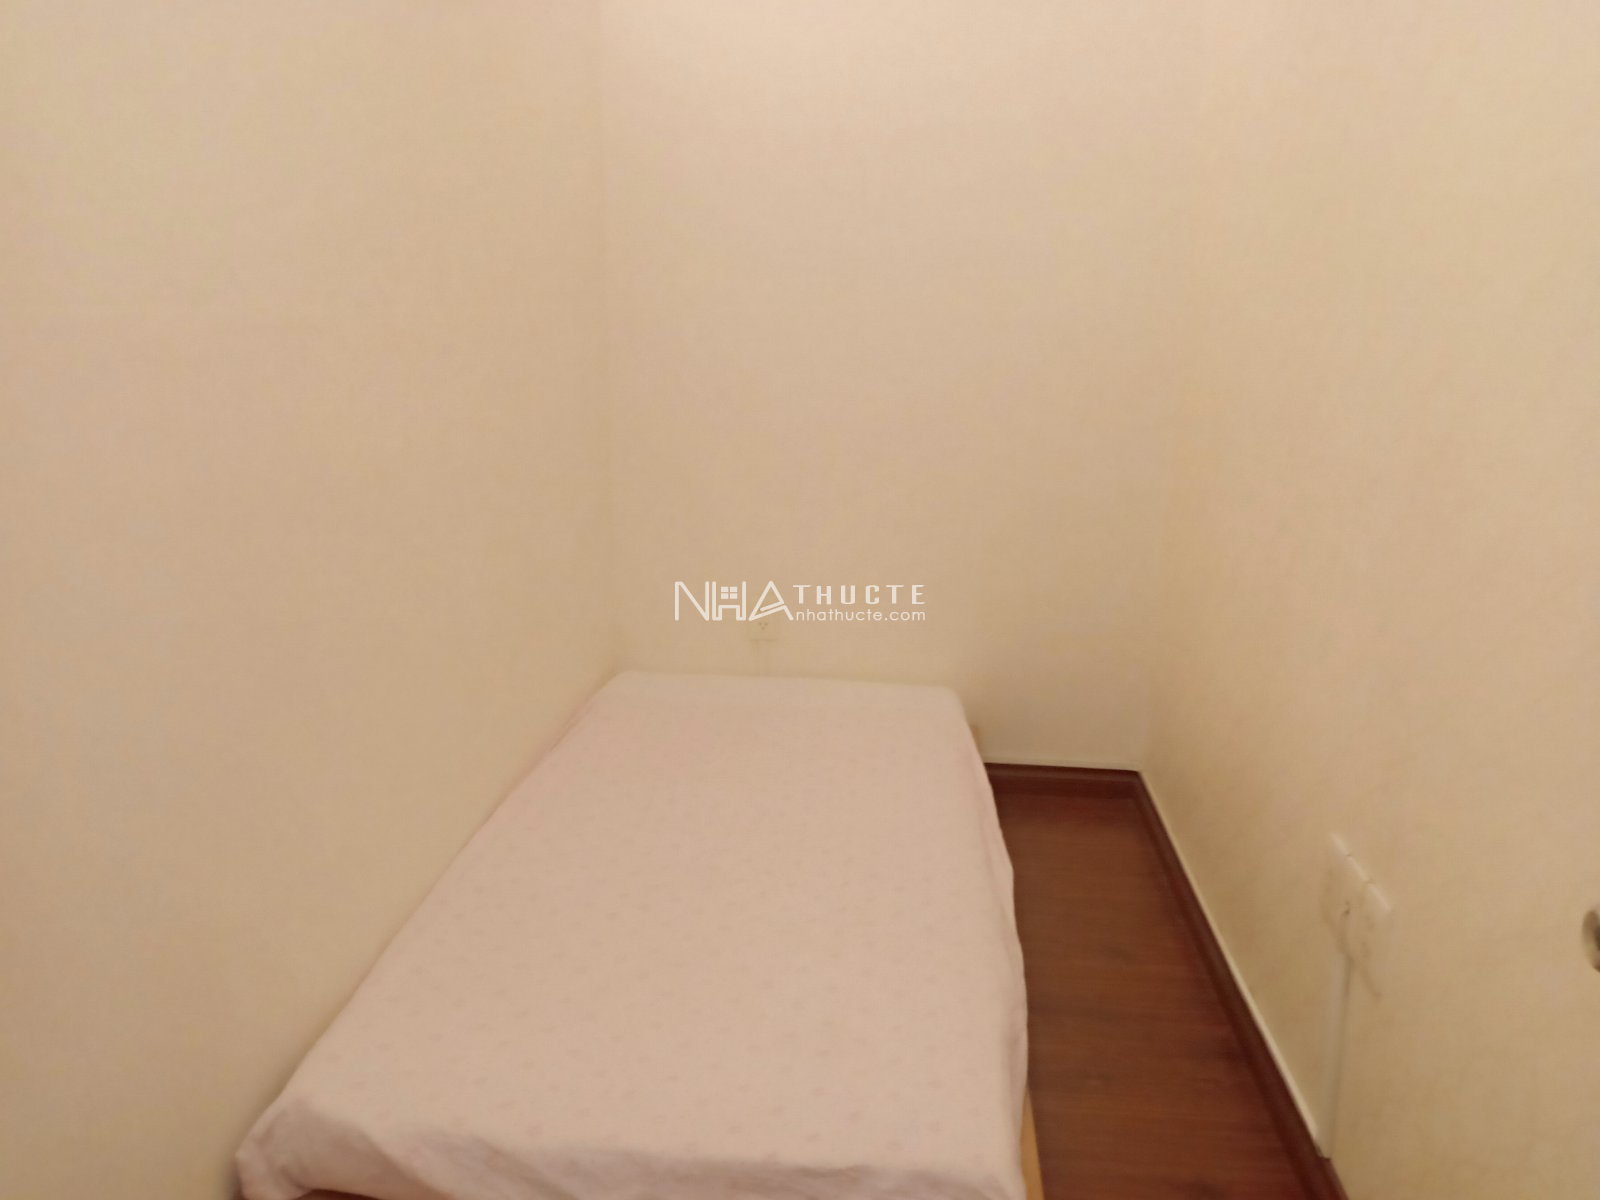 sale Him Lam Nam Khanh - 2 bedroom - 2 wc